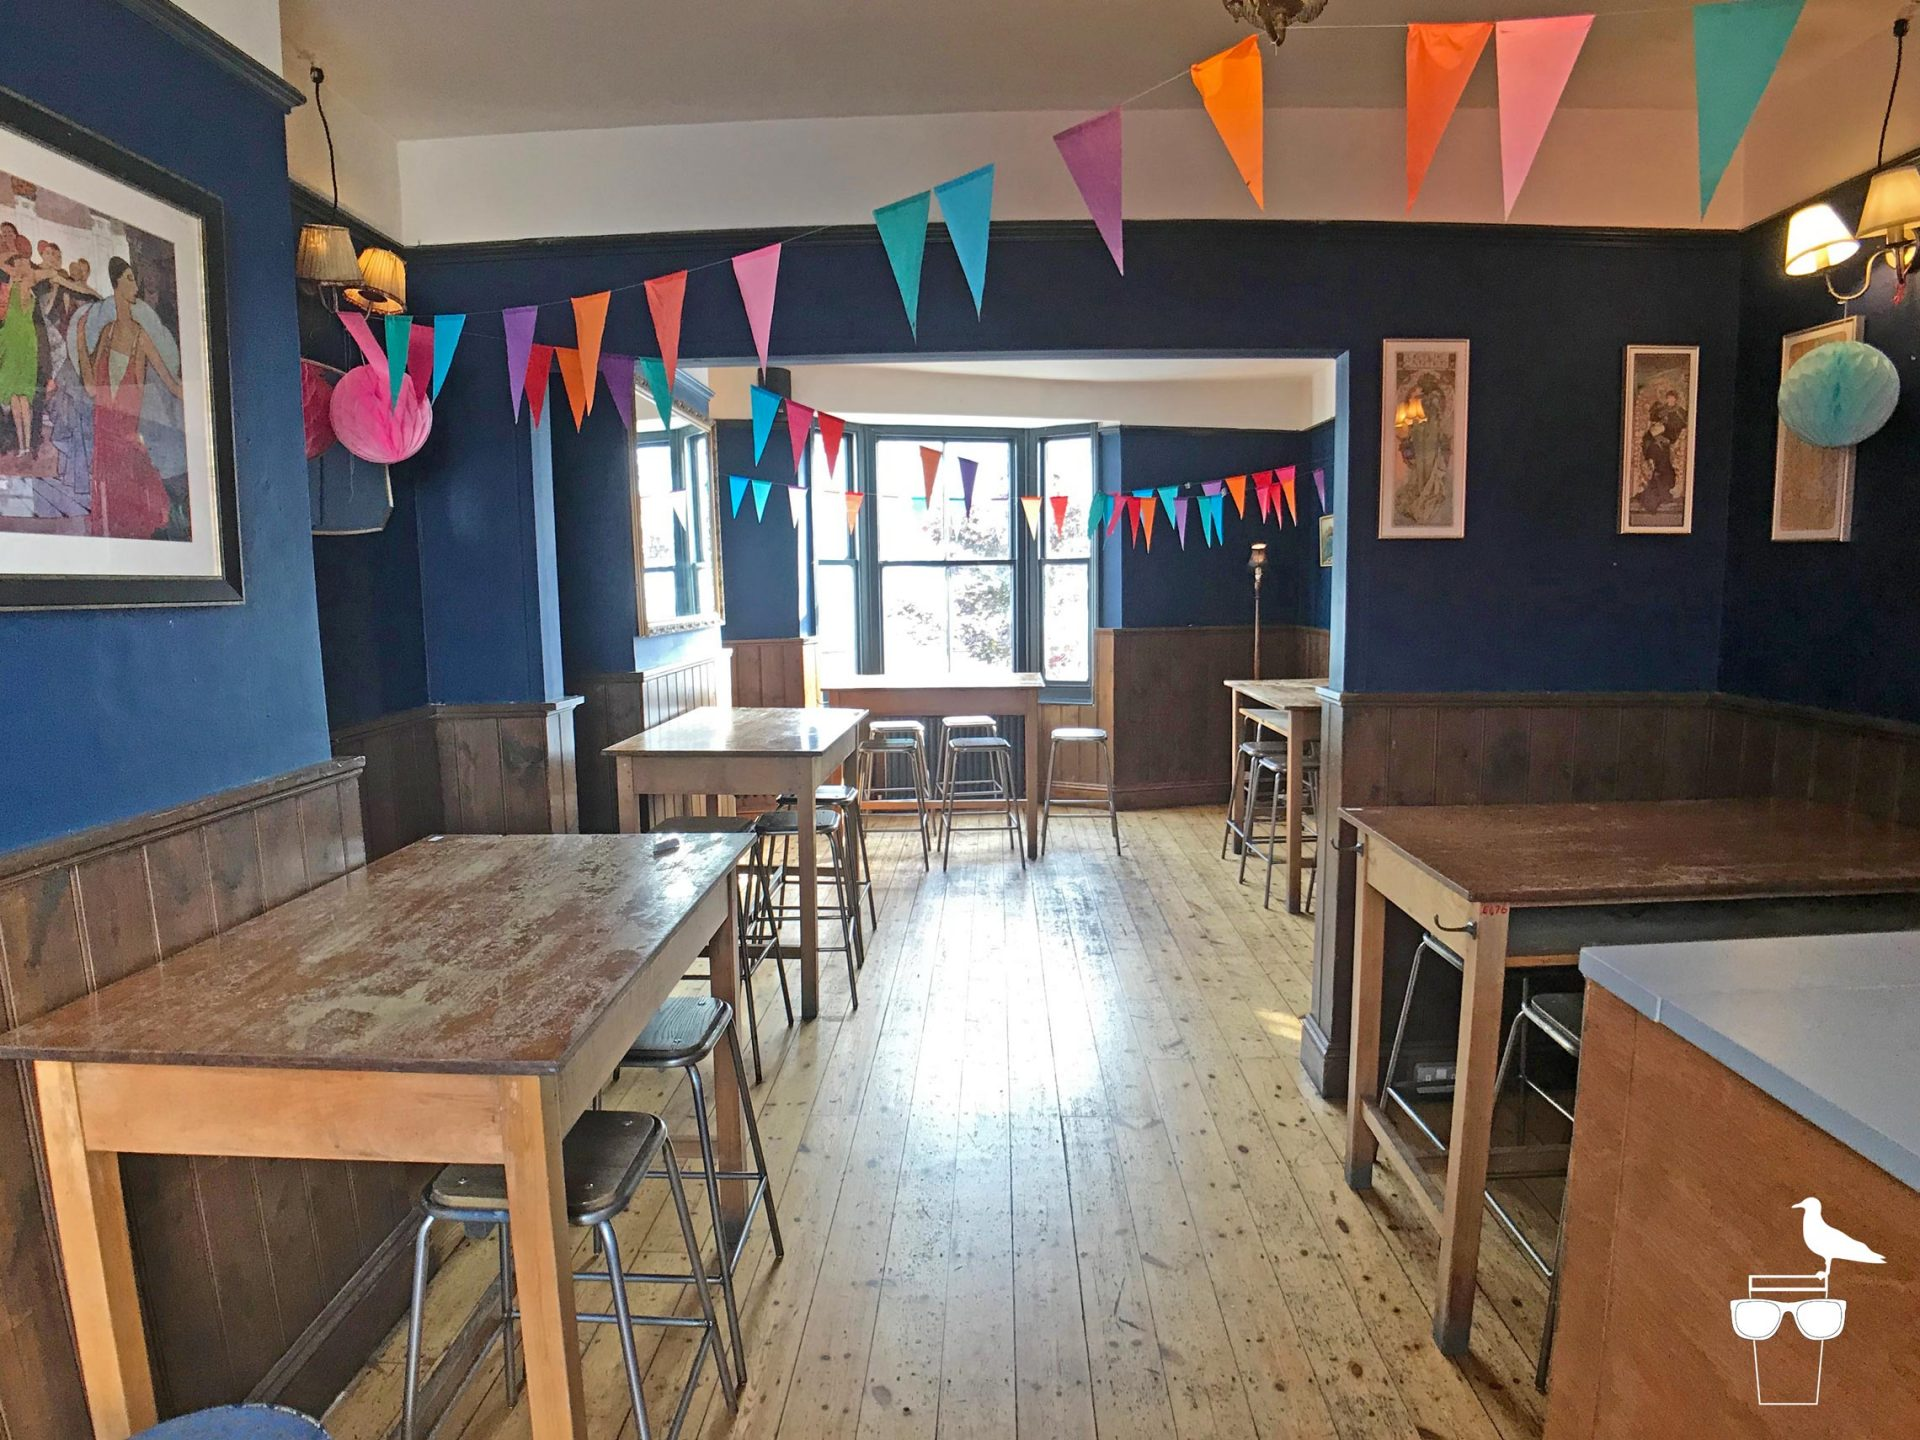 haus on the hill brighton pub hanover upstairs room seating